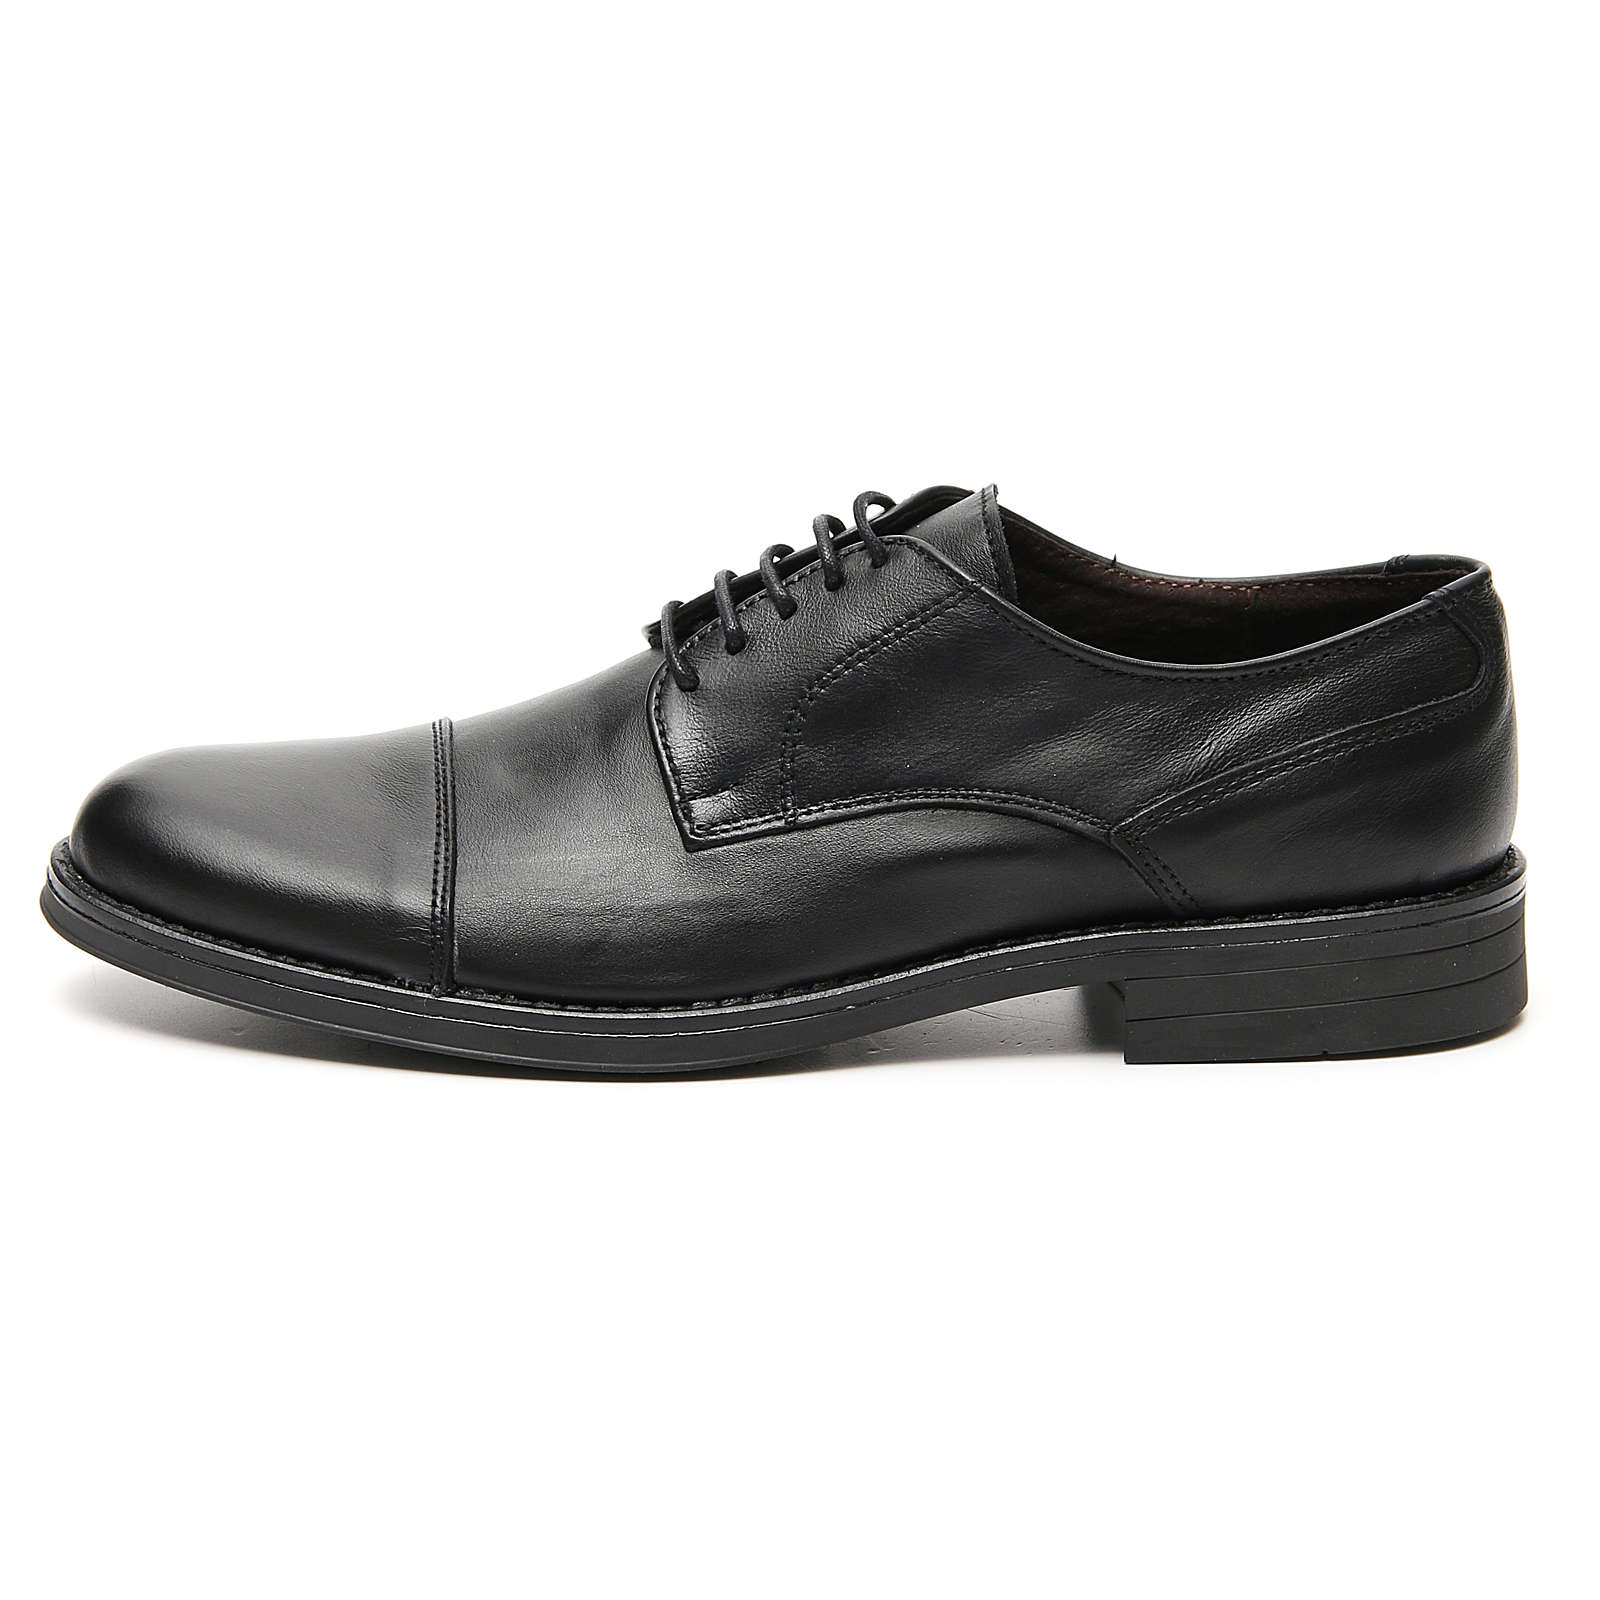 Shoes in opaque real leather, toe cut 4